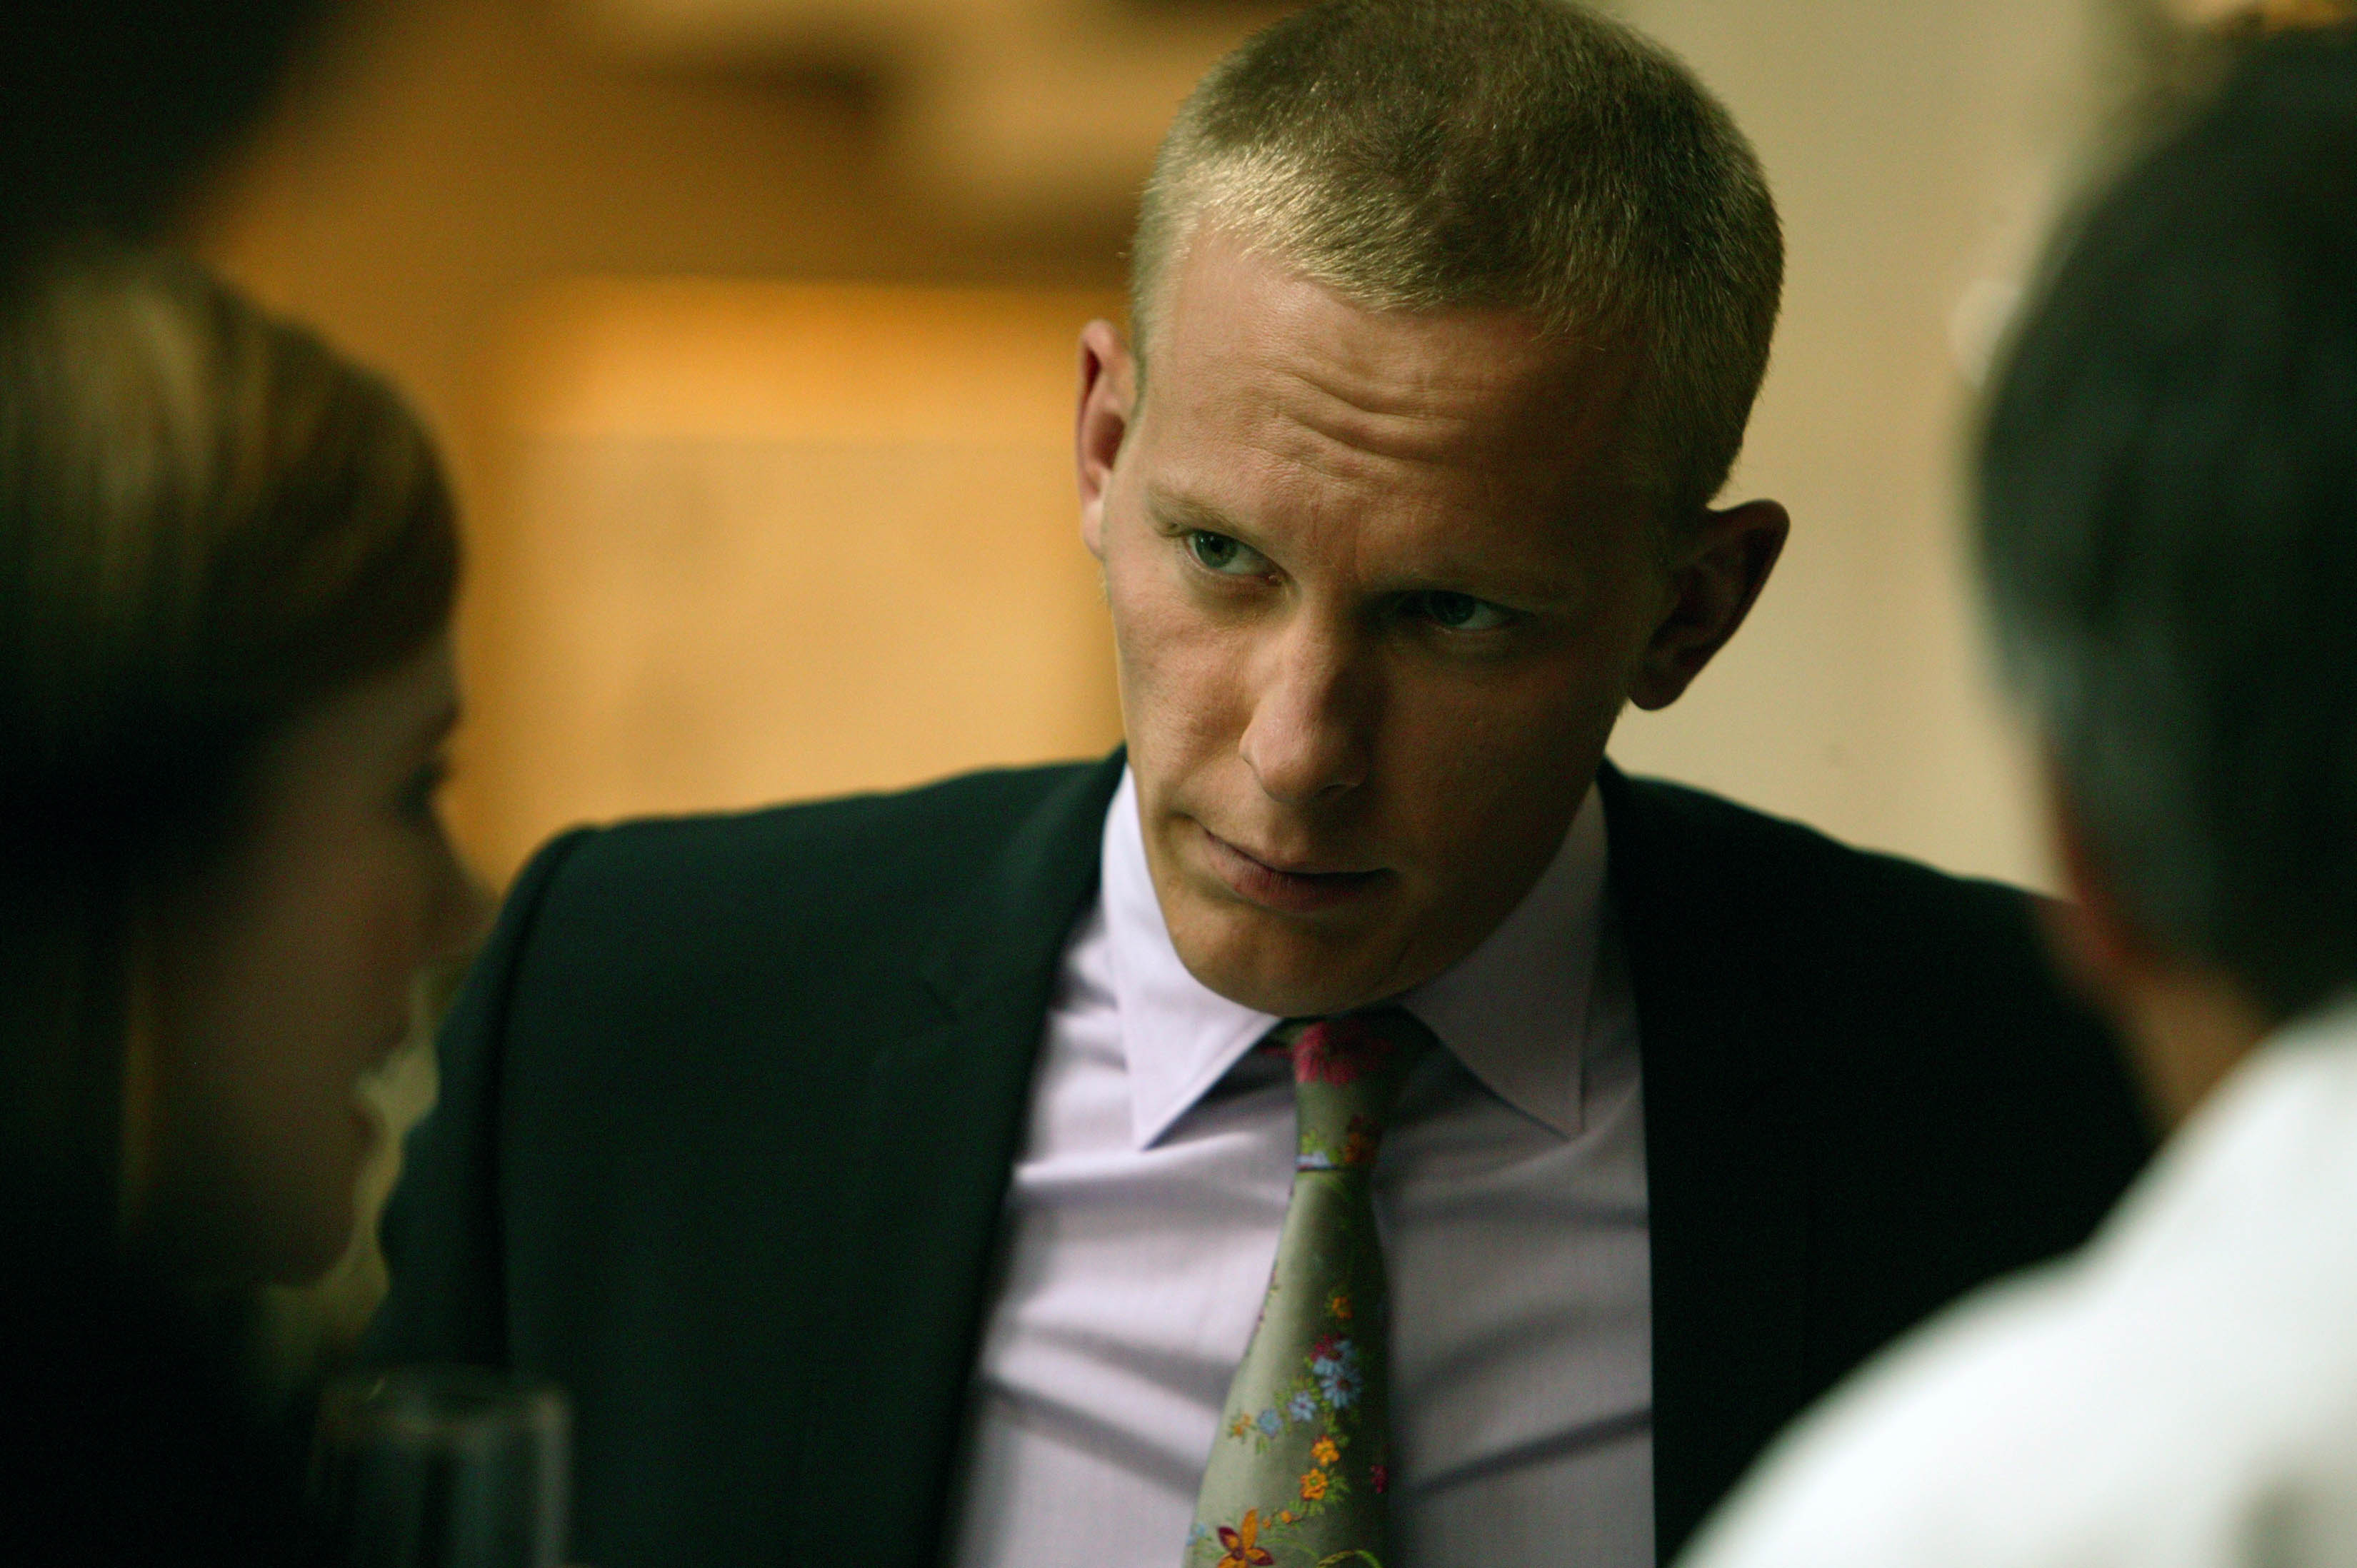 A quick chat with Lewis star Laurence Fox